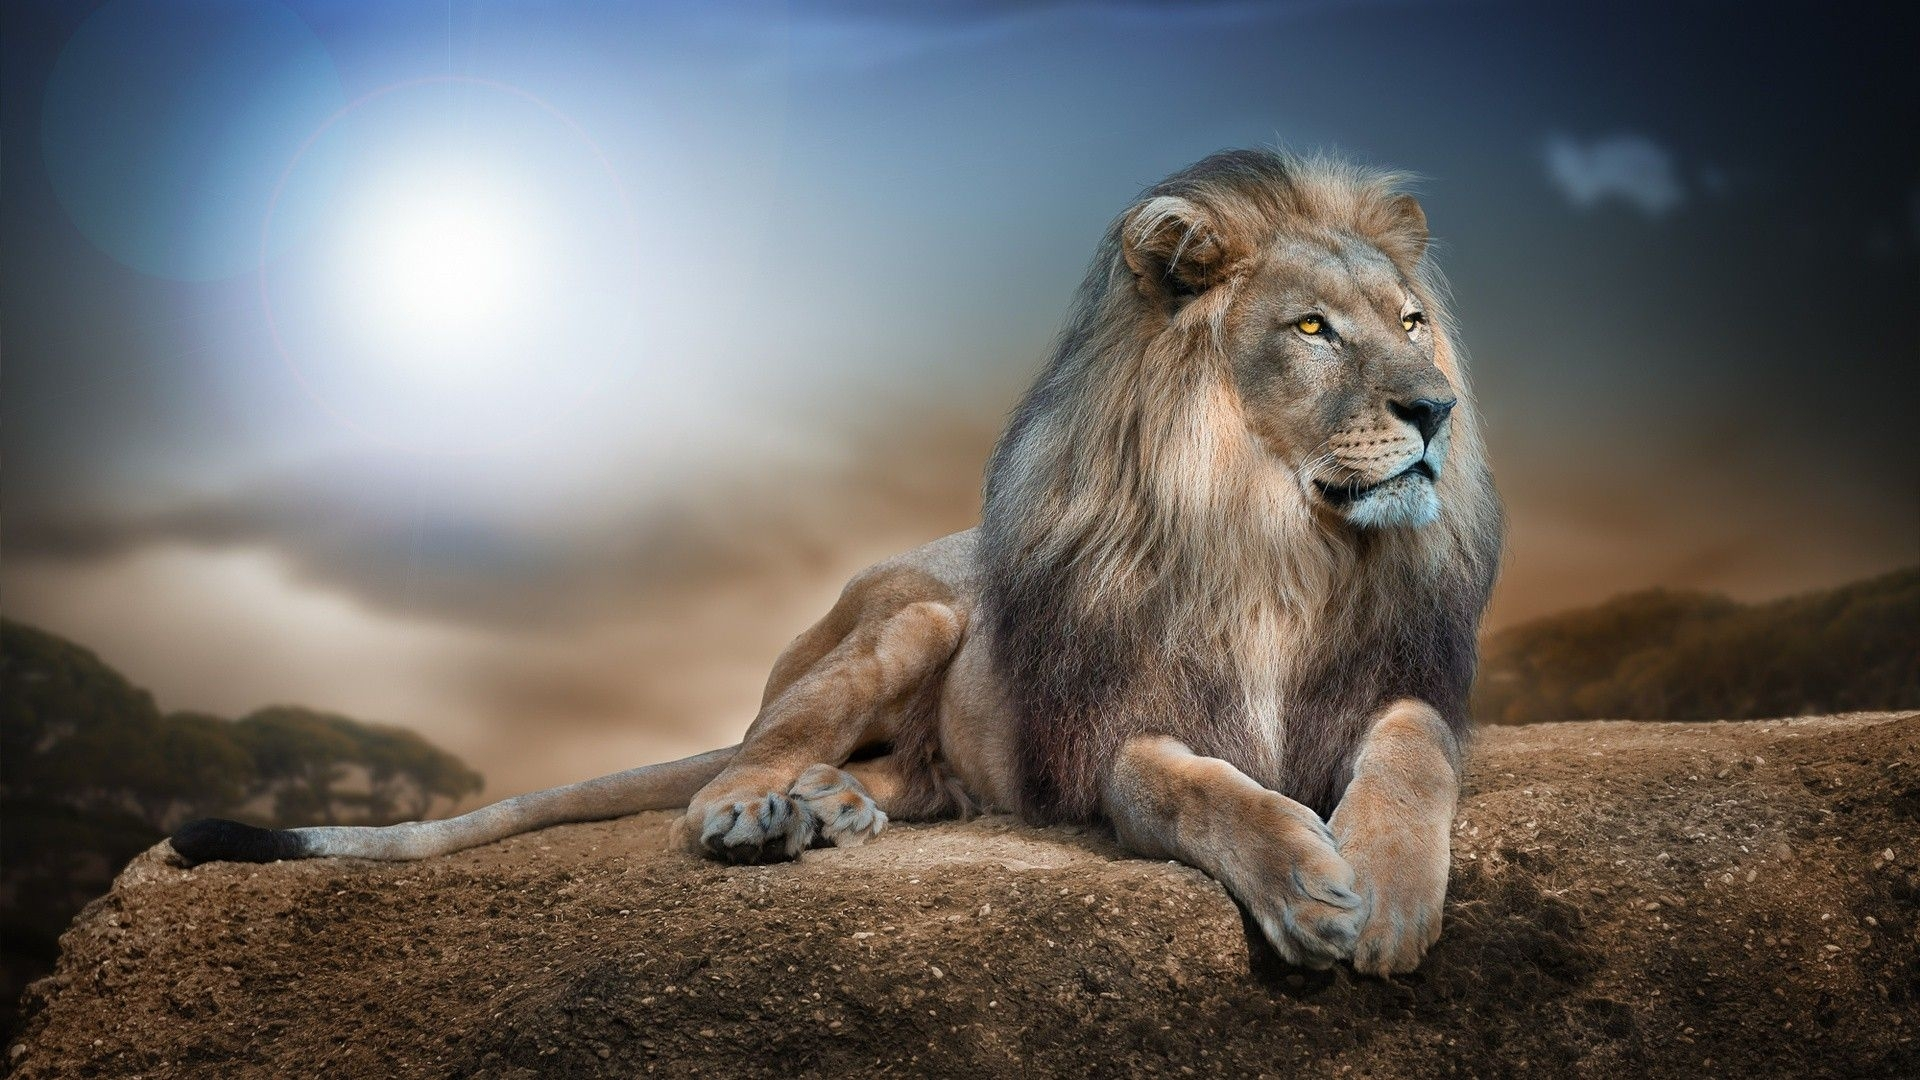 wild animal lion hd wallpaper | view hd | download wallpaper